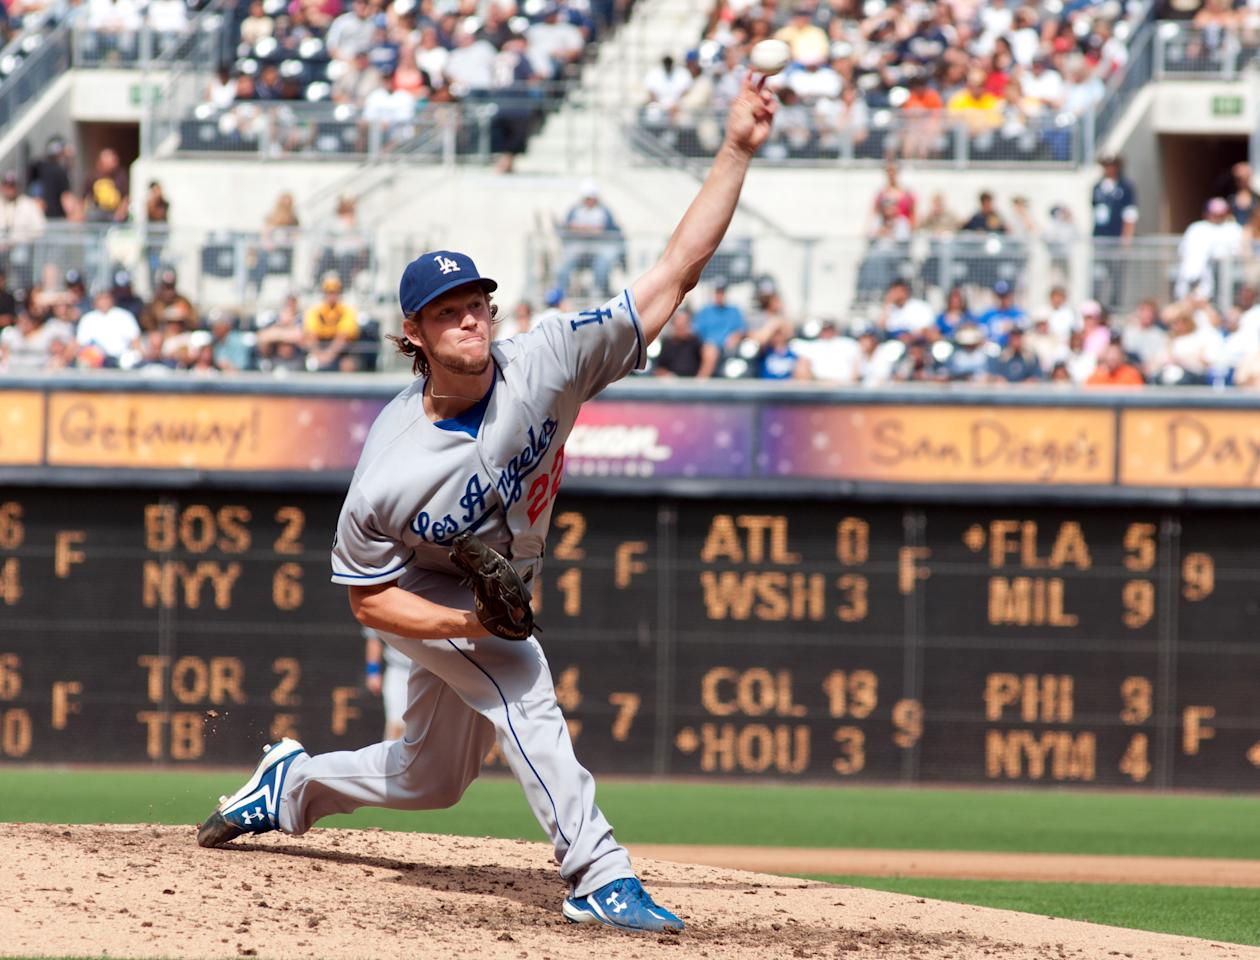 SAN DIEGO, CA - SEPTEMBER 25: Clayton Kershaw #22 of the Los Angeles Dodgers throws the ball during the 8th inning on his way recording his 21st win of the season during the game against the San Diego Padres at Petco Park on September 25, 2011 in San Diego, California. (Photo by Kent C. Horner/Getty Images)